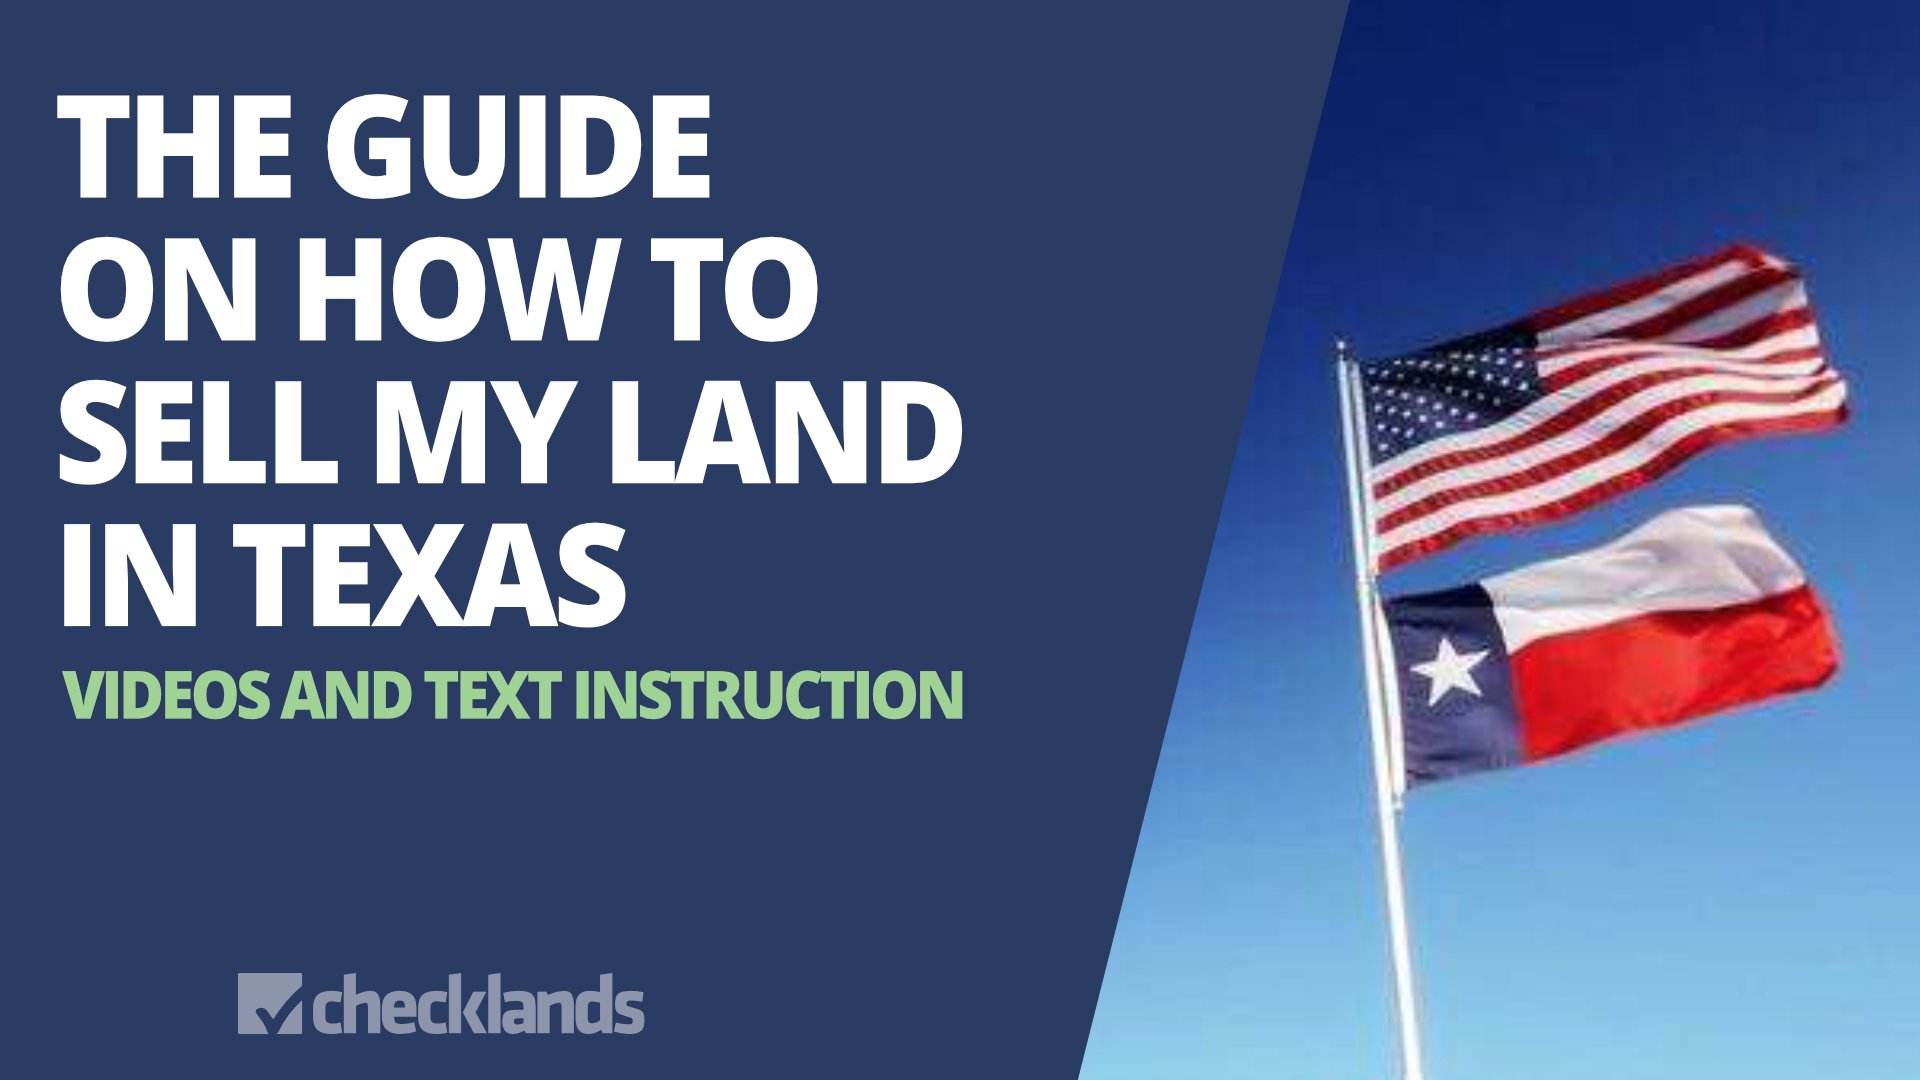 GUIDE TO SELL MY LAND IN TEXAS, Checklands